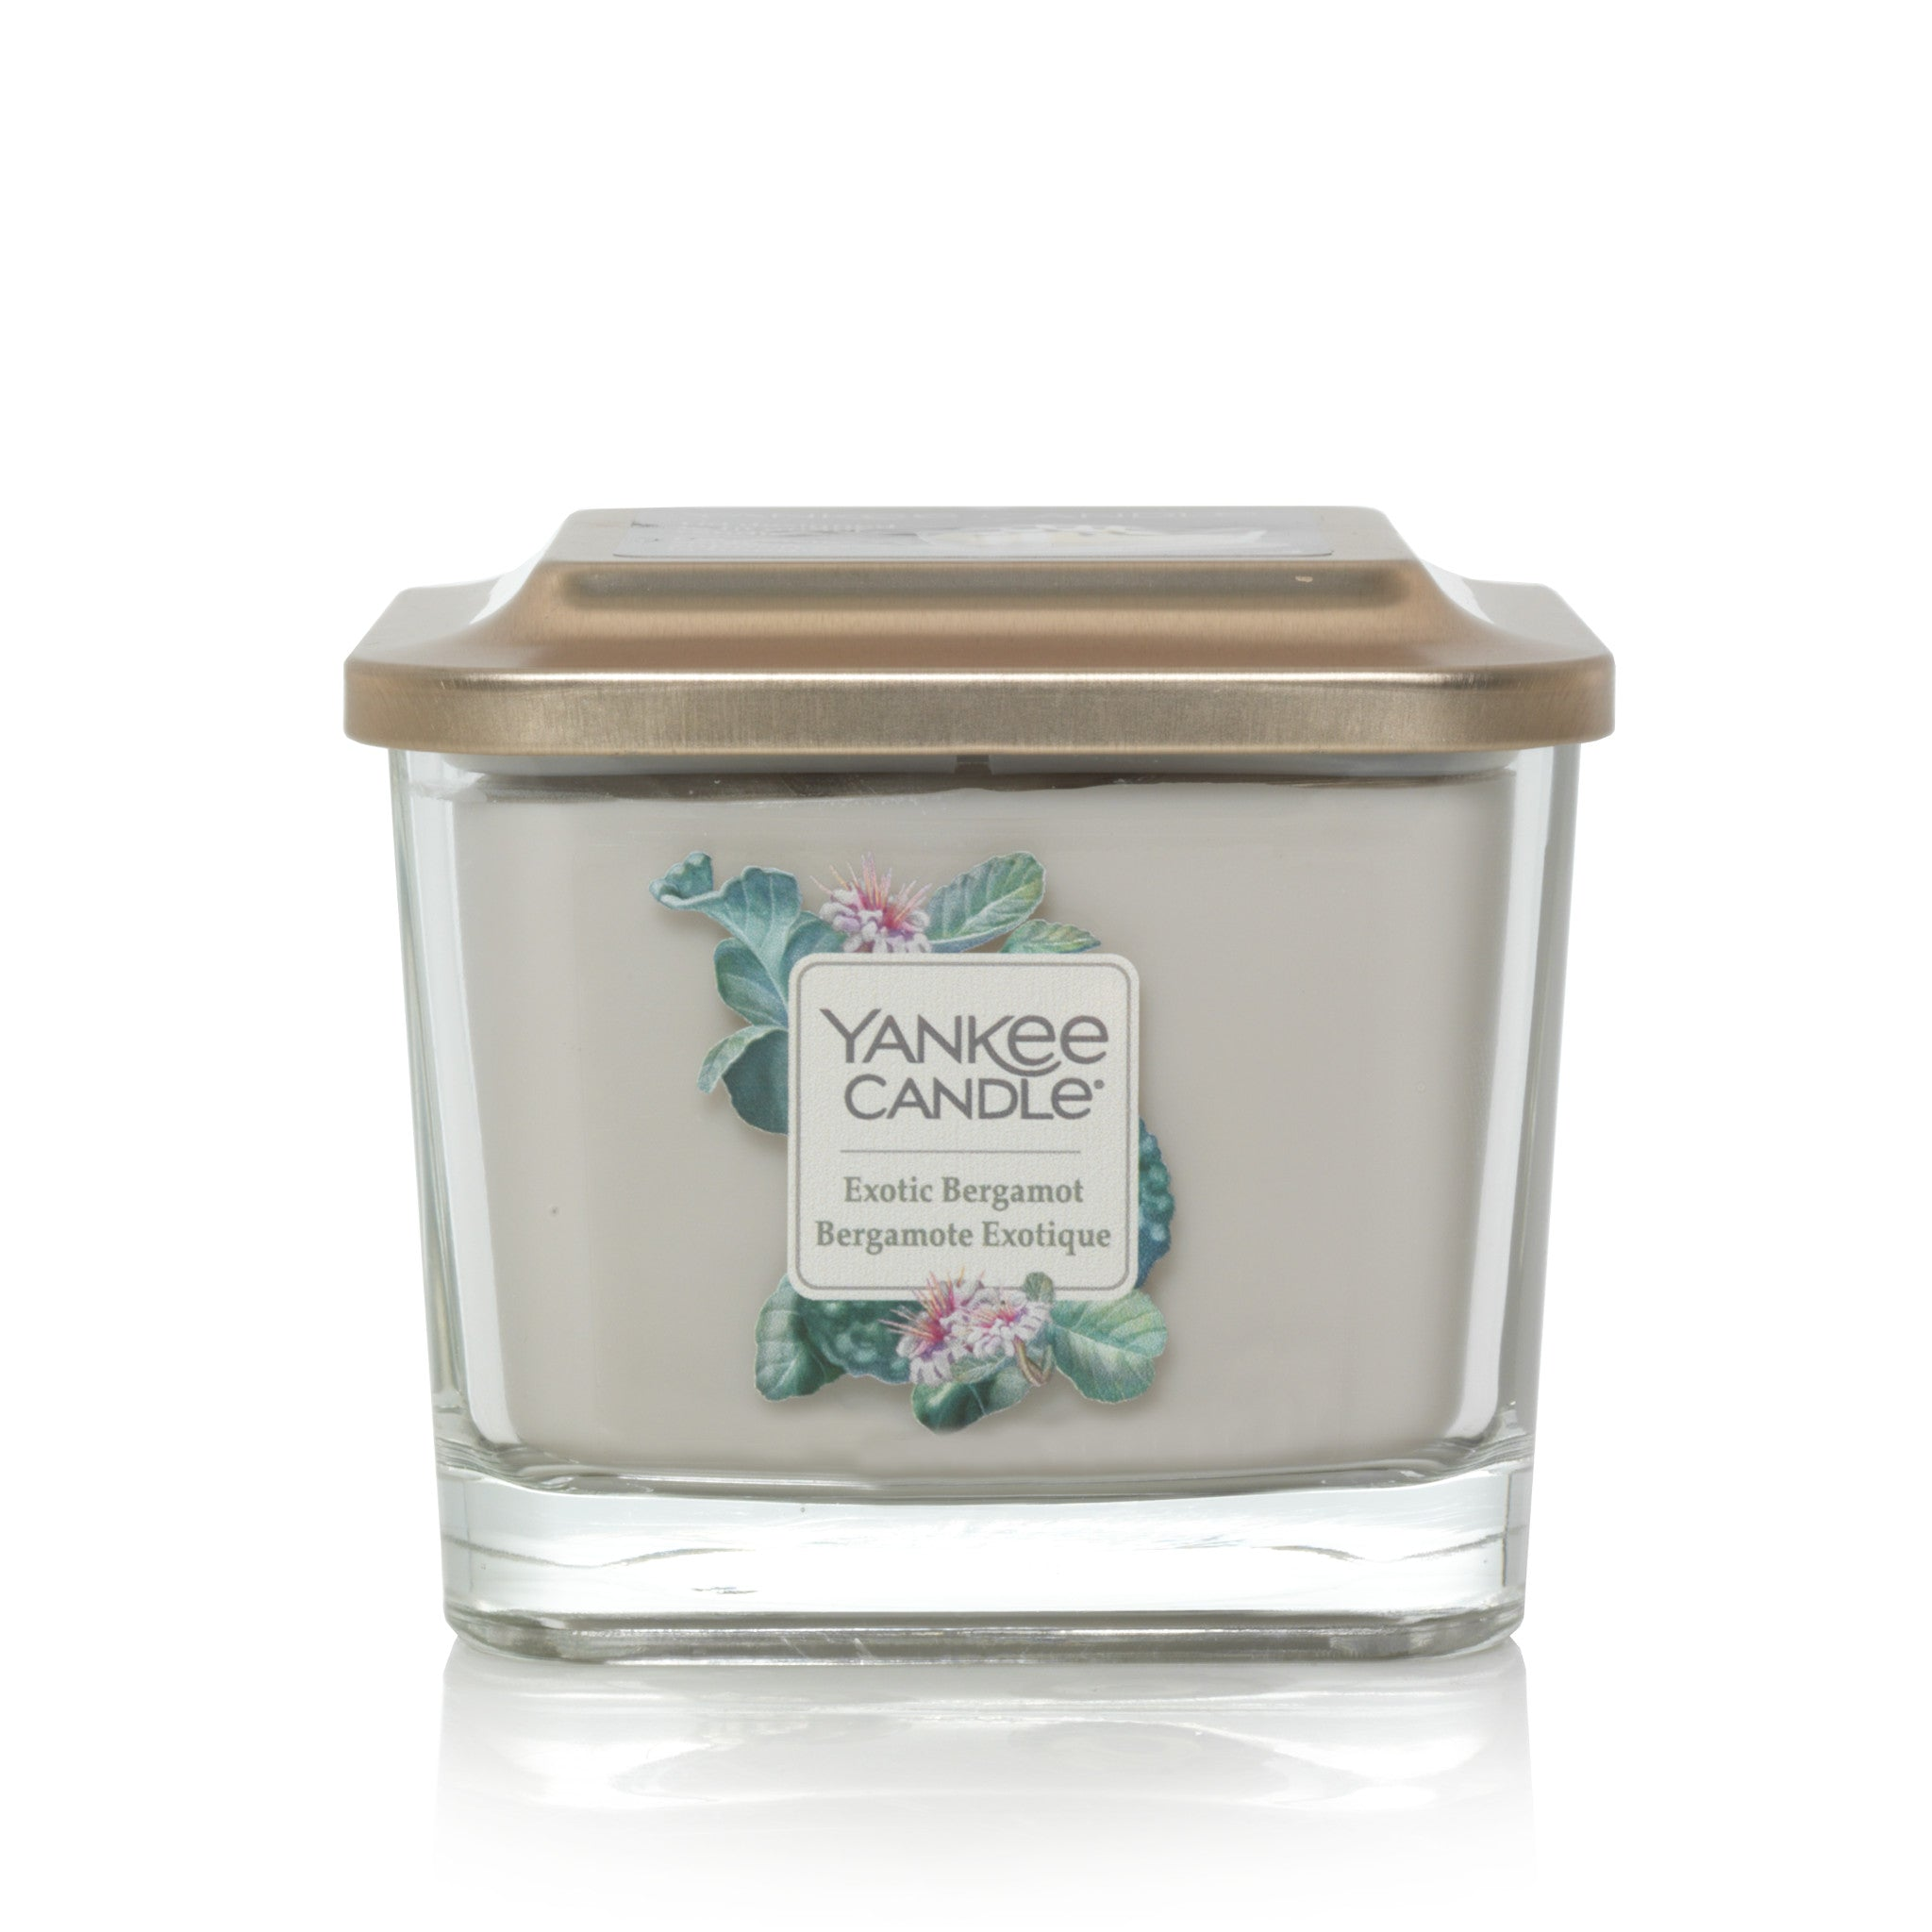 EXOTIC BERGAMOT -Yankee Candle- Candela Media